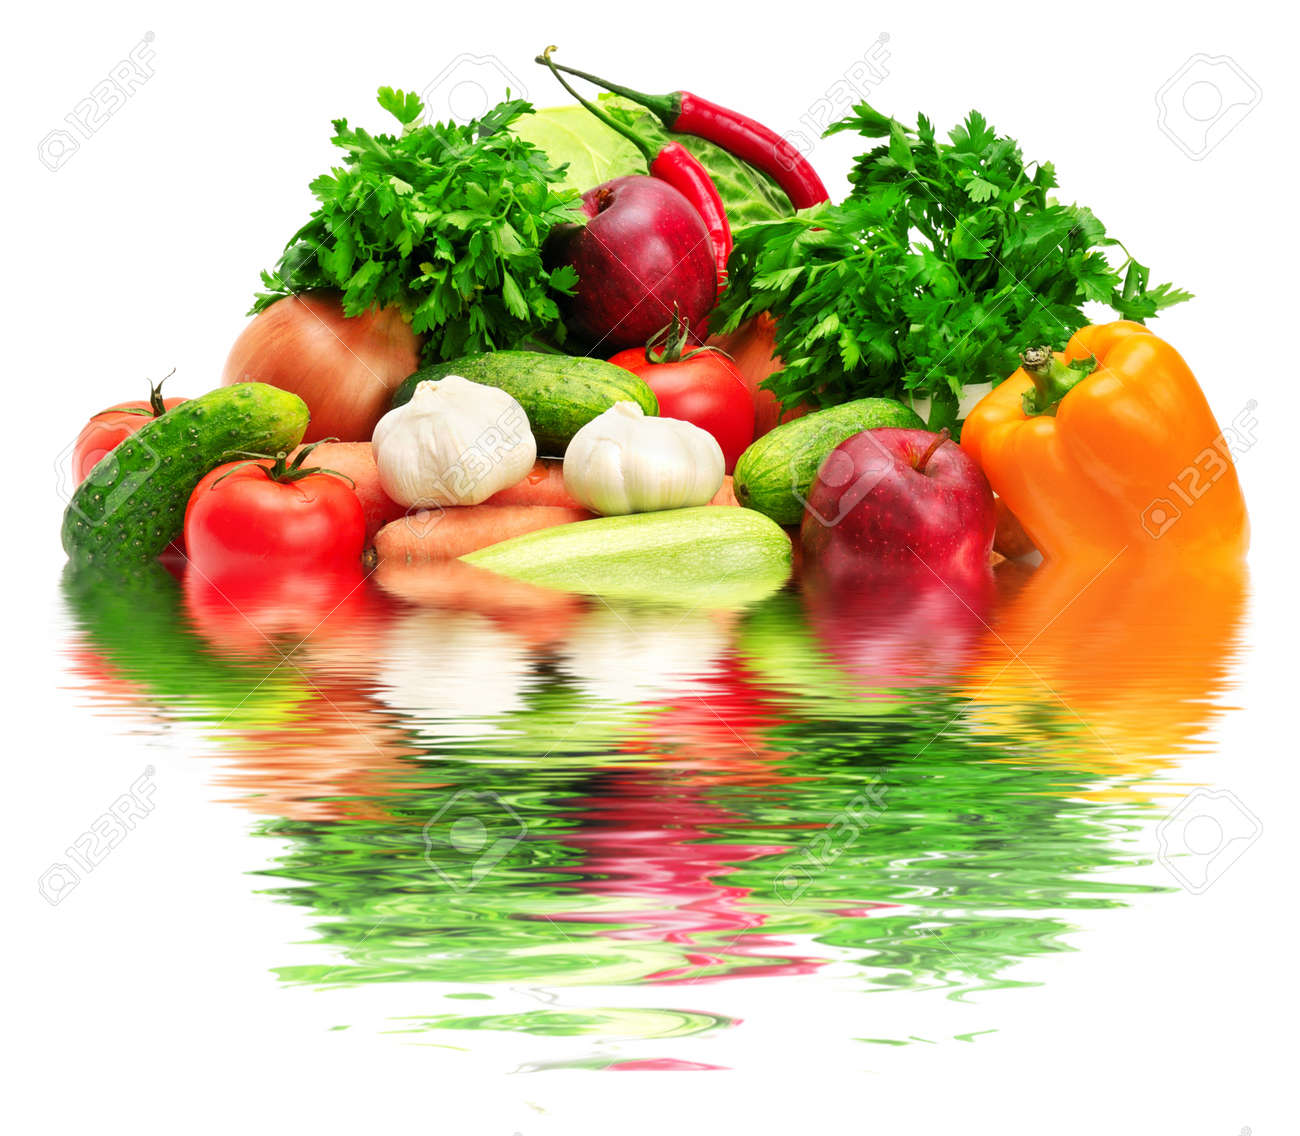 fruits and vegetables reflected in water Stock Photo - 10414813